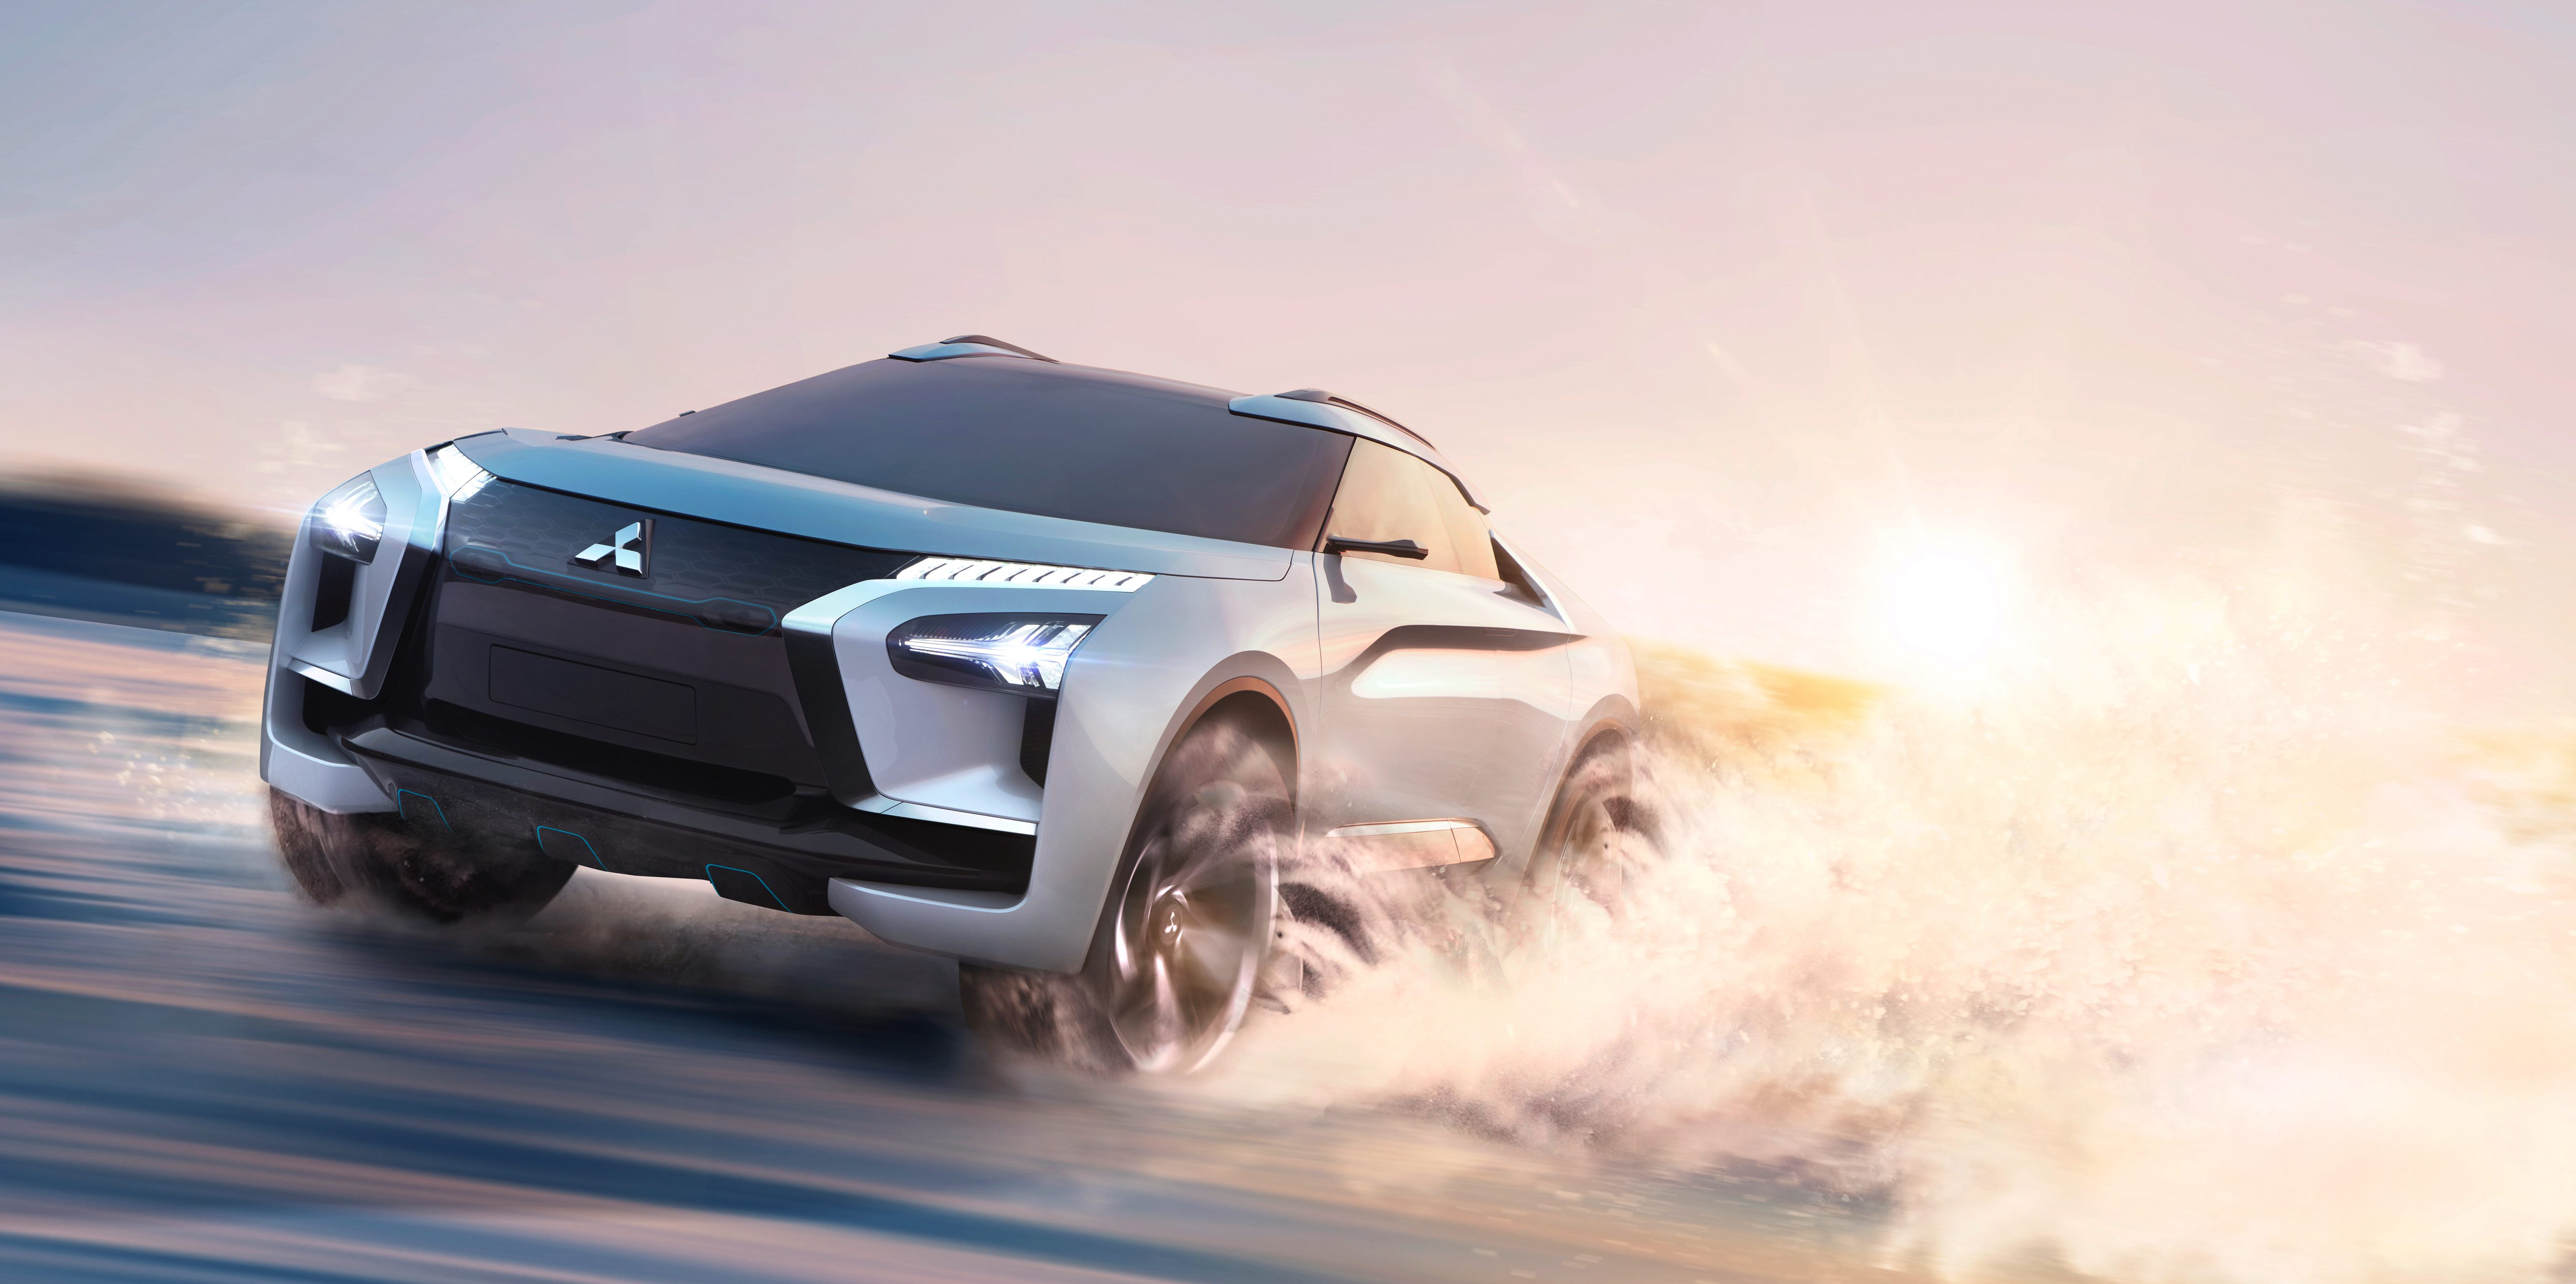 Mitsubishi unveils new all-electric E-Evolution, says it's 'beginning of the next chapter'